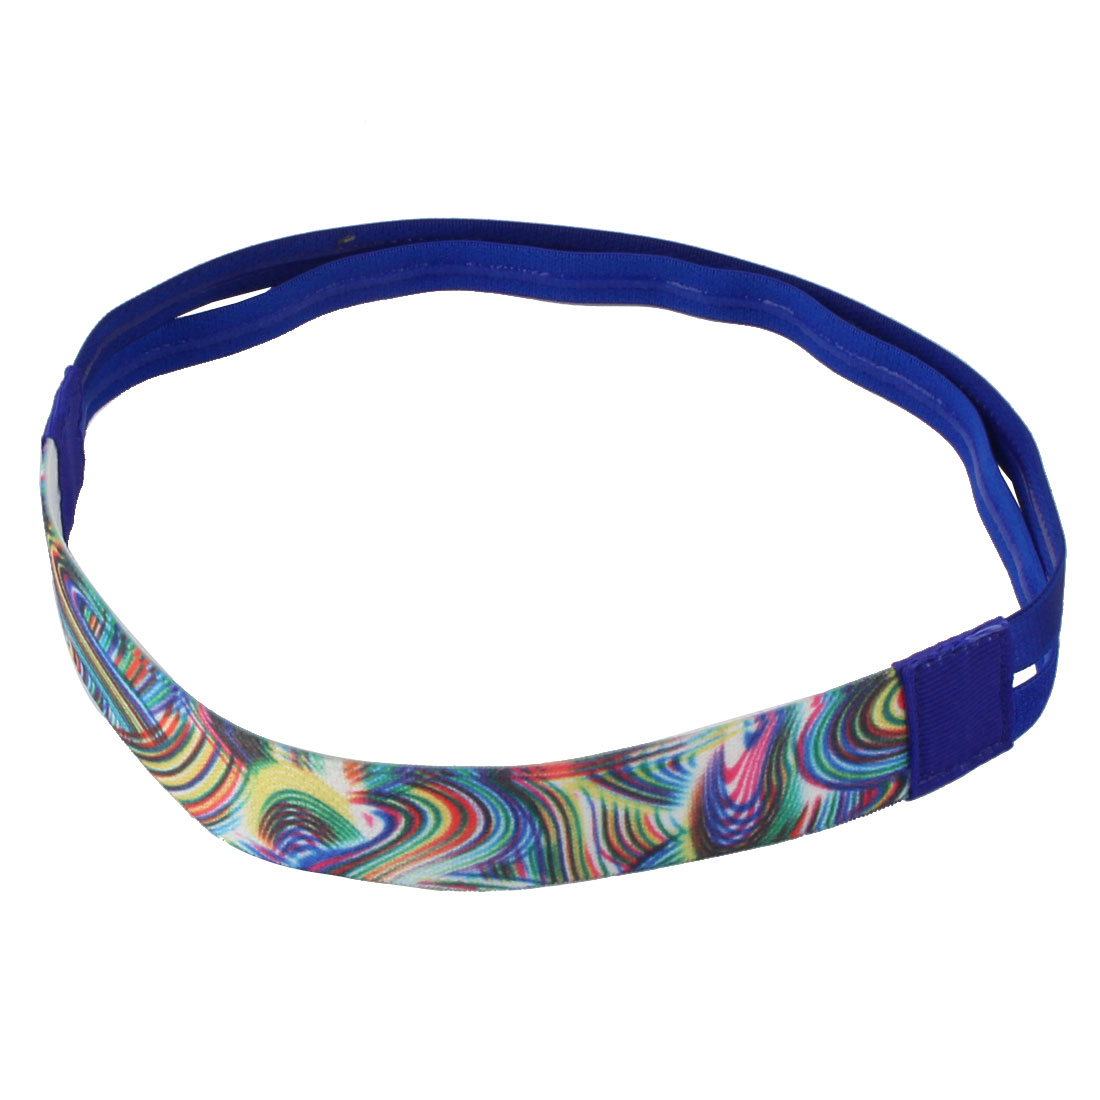 Exercise Silicone Double Line Design Non-slip Sports Headband Headwrap Dark Blue